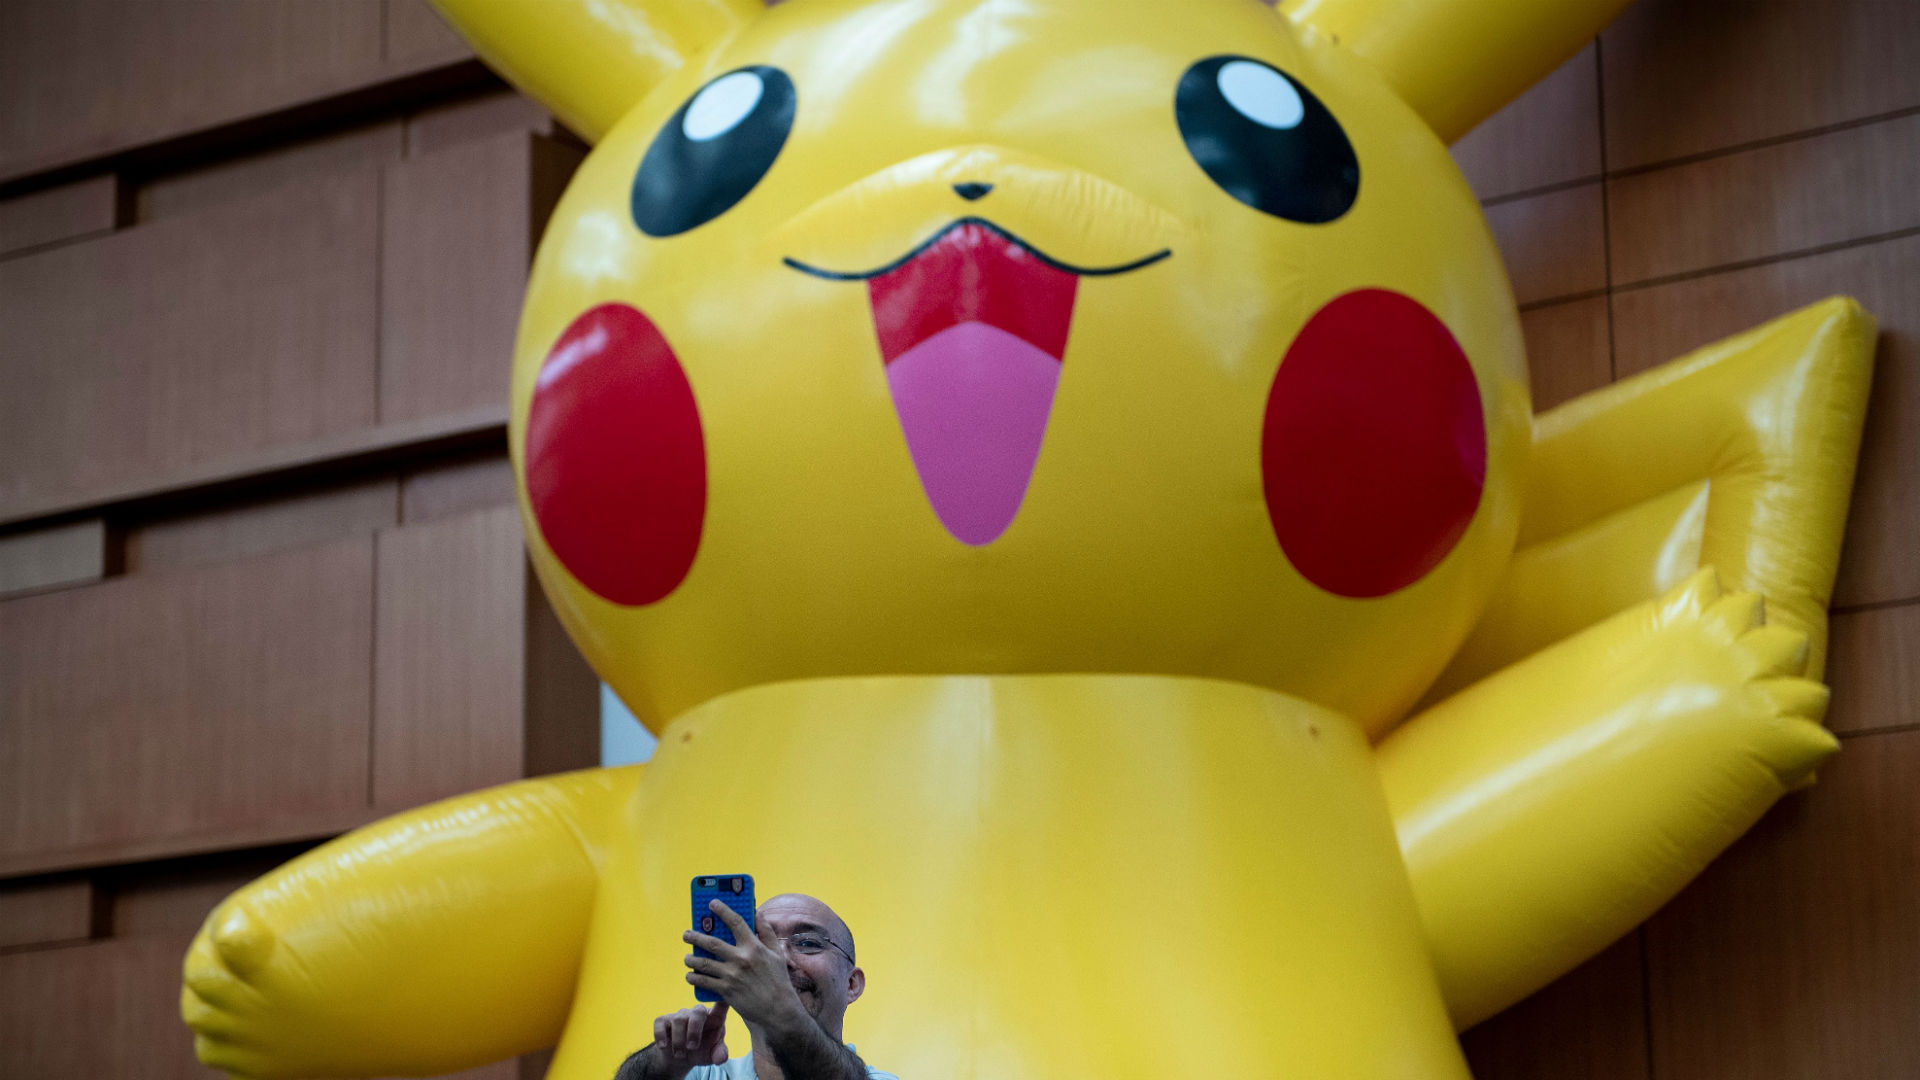 A new 'Pokemon Snap' game is coming to Nintendo Switch, and Twitter is freaking out about it